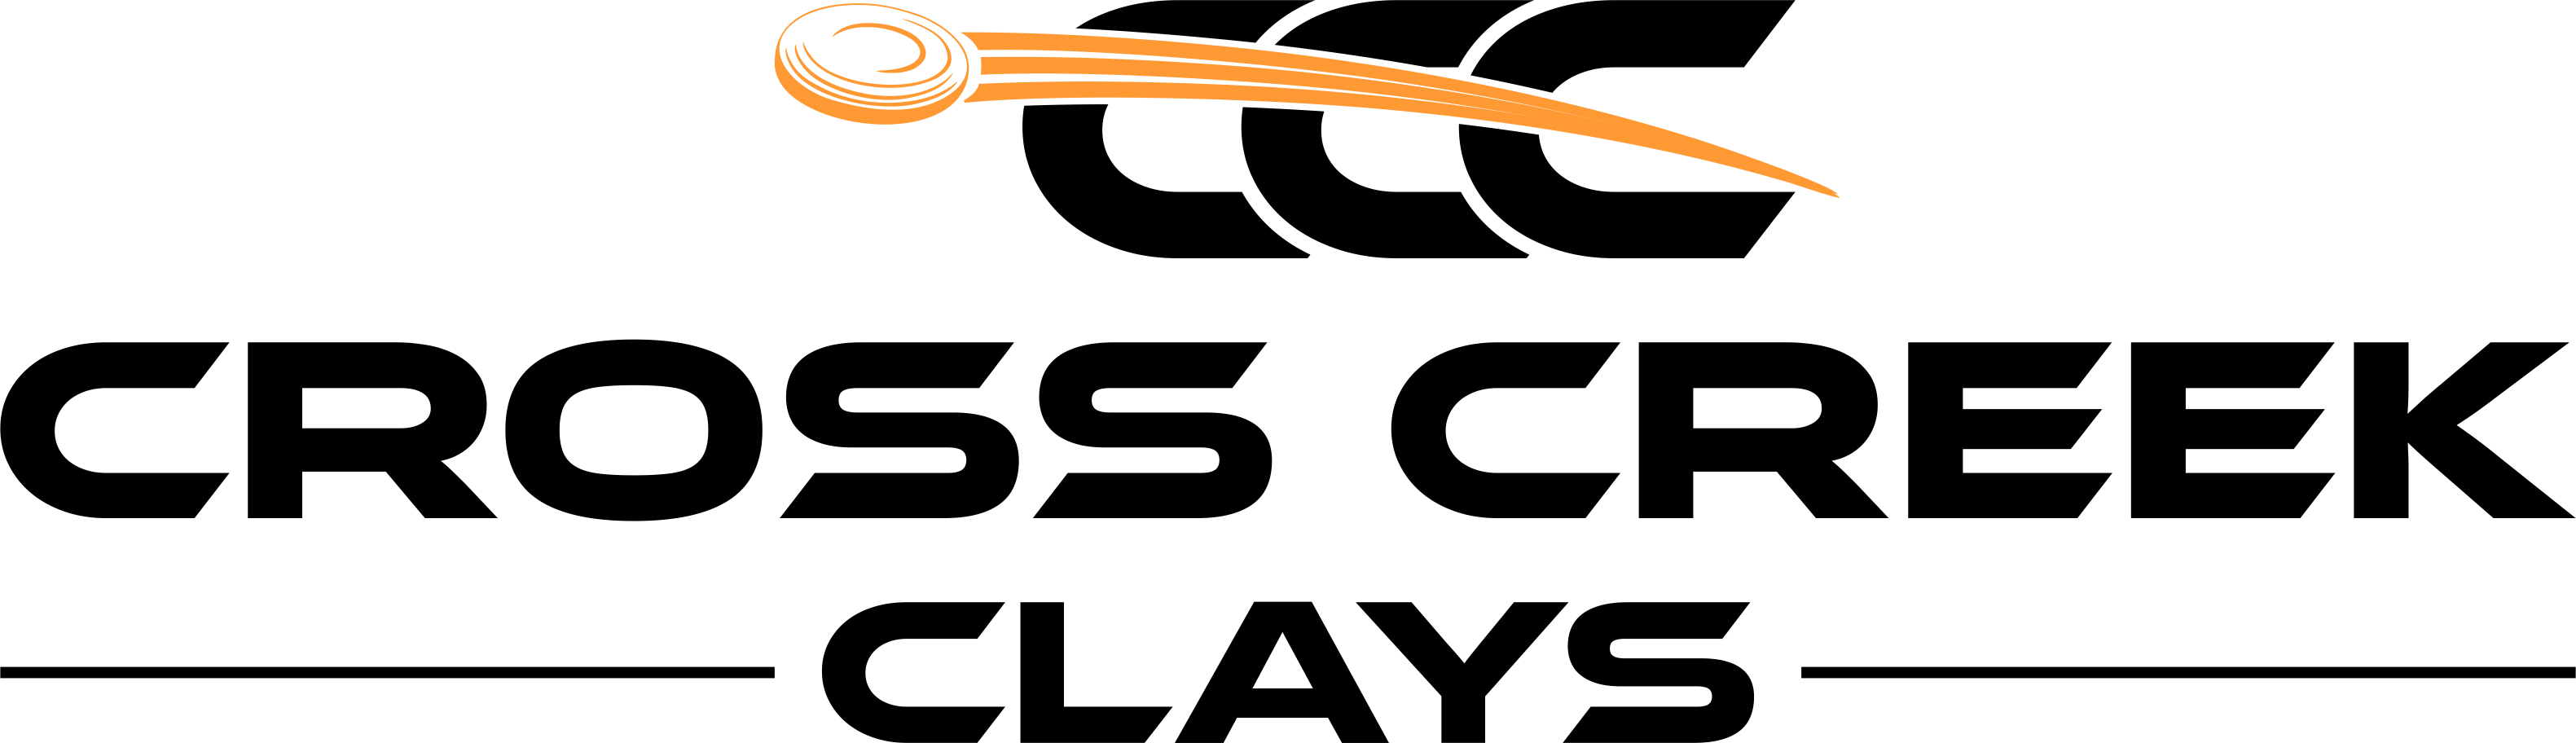 Cross Creek Clays | Sporting Clays, 5-Stand, Make-A-Break, FITASC